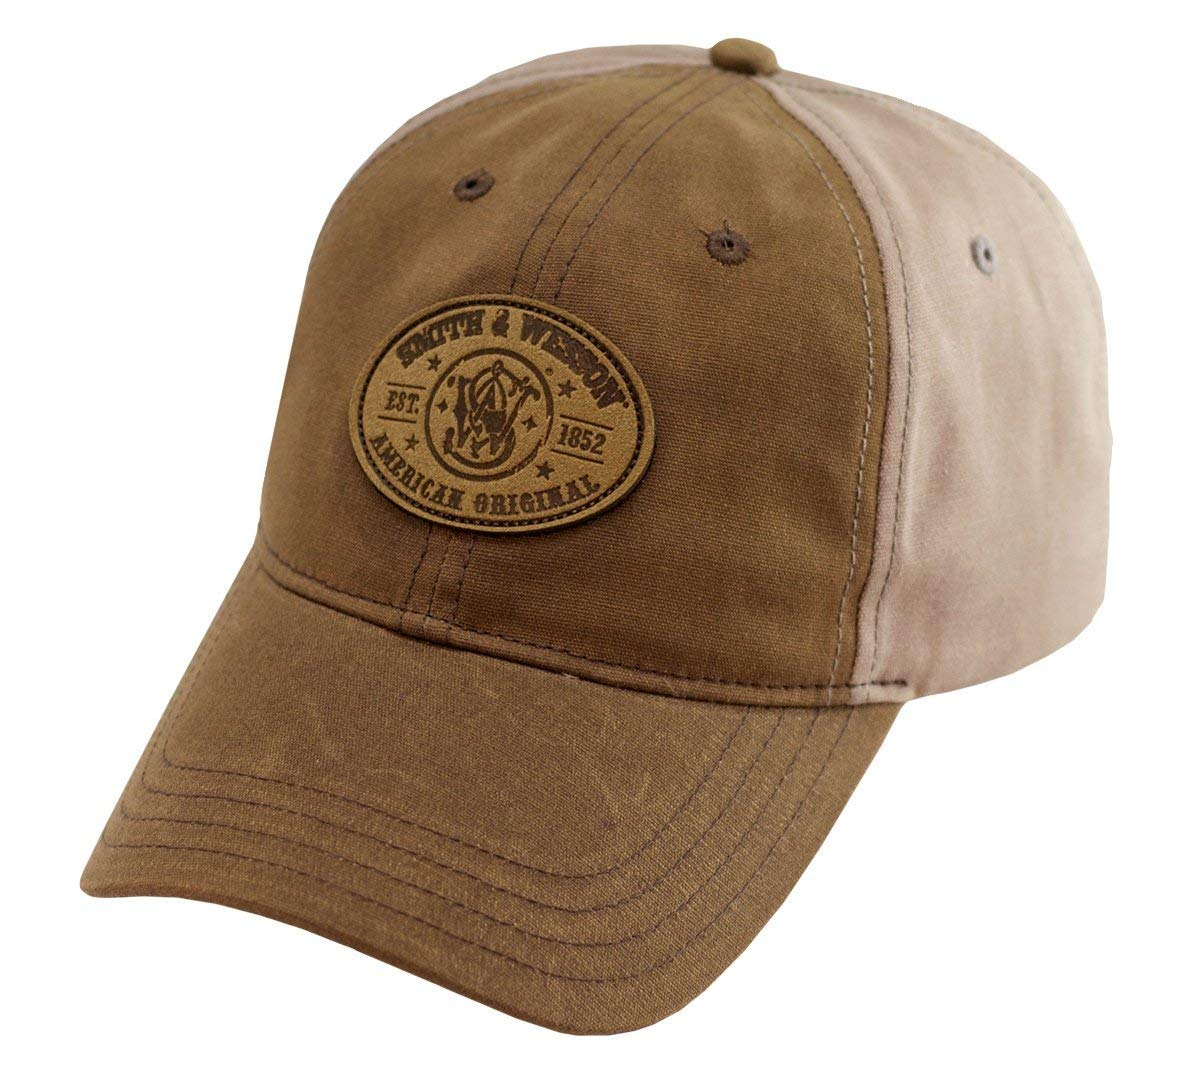 S&W Tan Leather Oval Patch Logo Cap - A1816